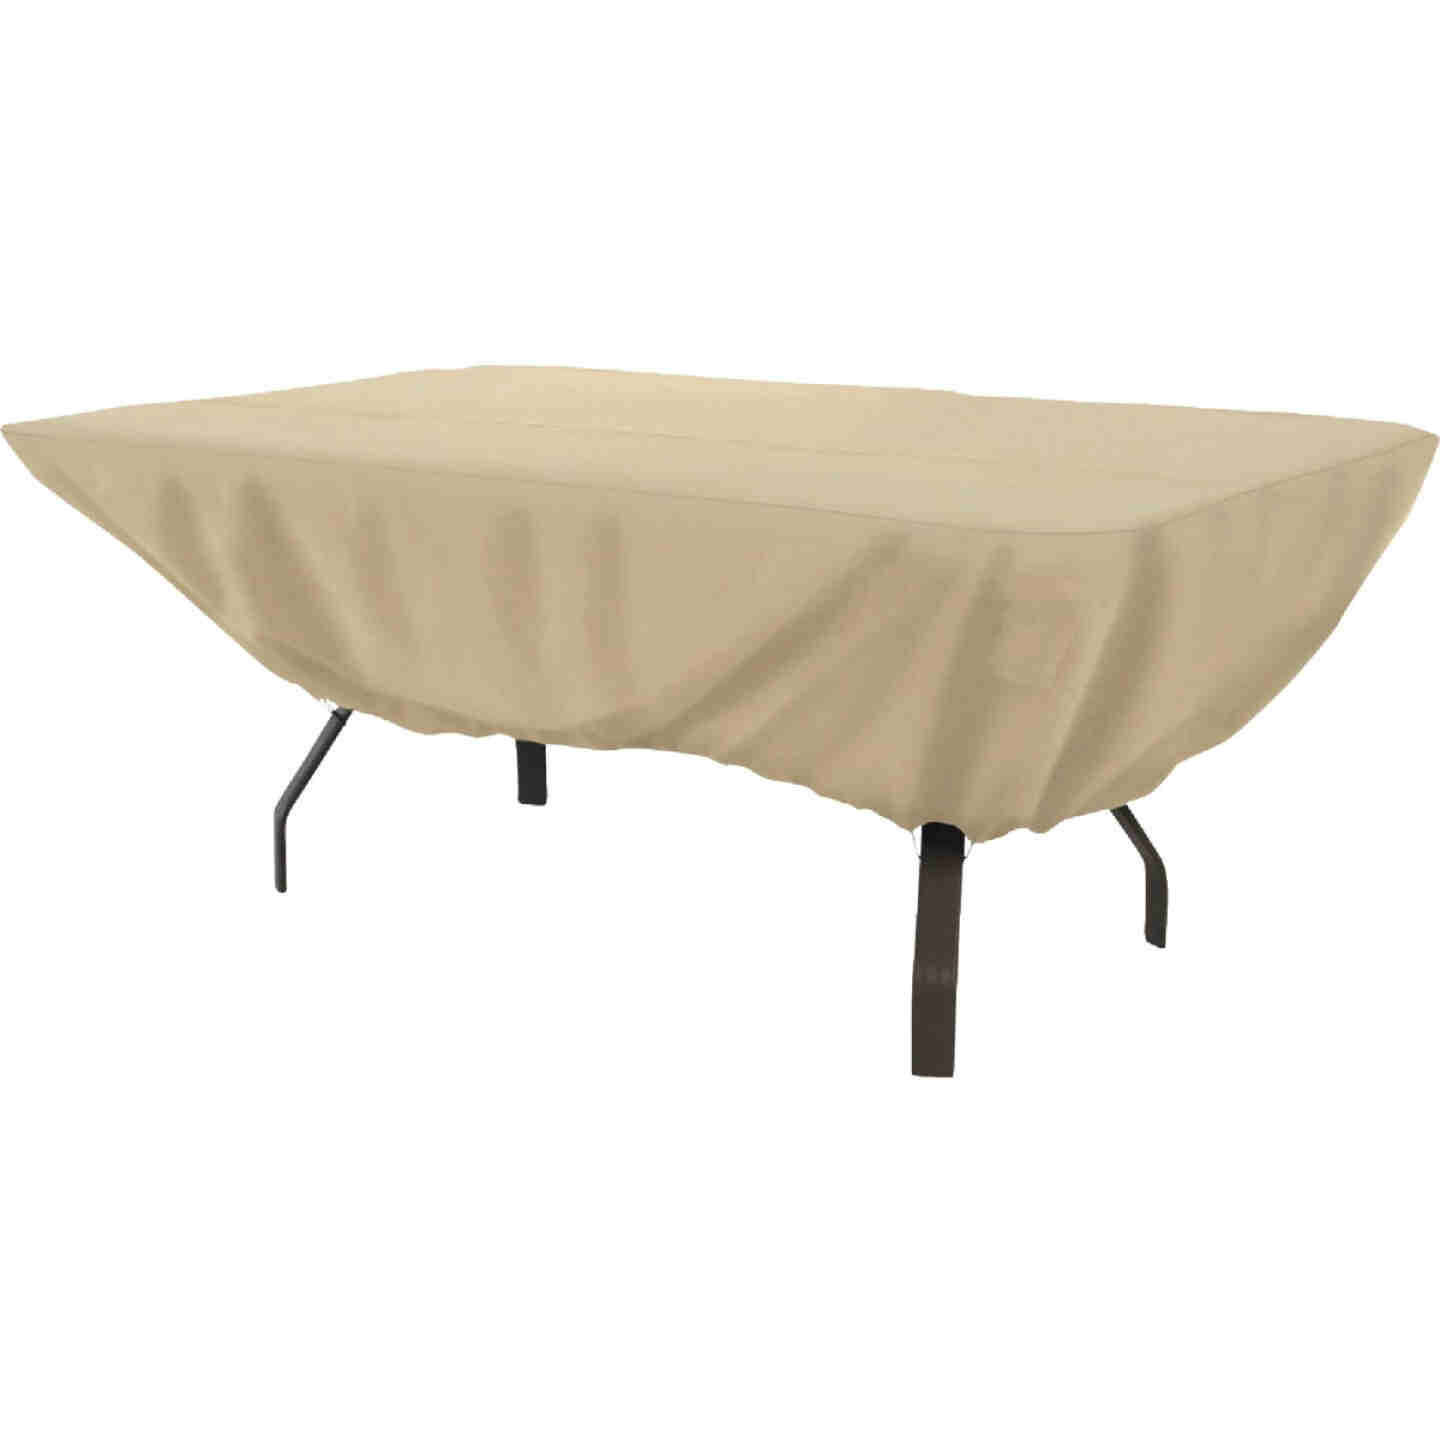 Classic Accessories 44 In. W. x 23 In. H. x 72 In. L. Tan Polyester/PVC Table Cover Image 1